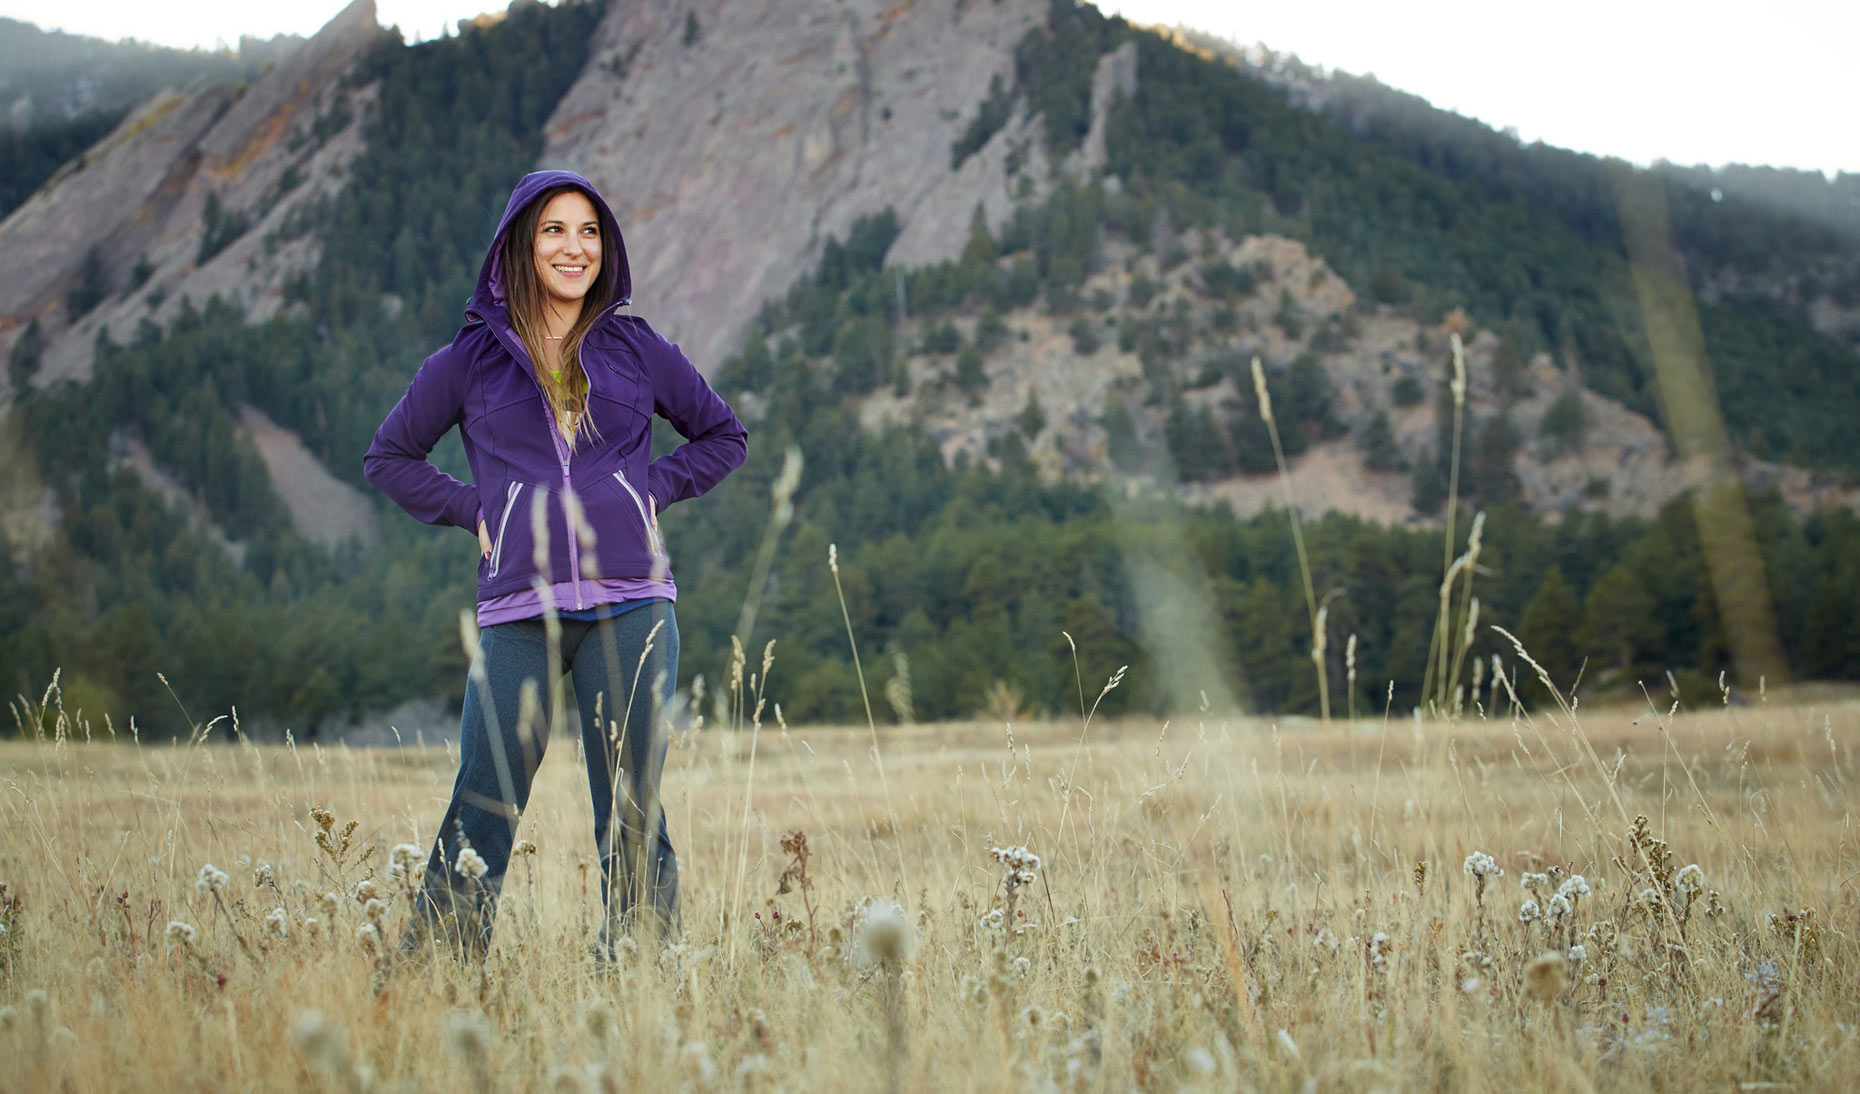 Otto Bock/woman in field/mountains/purple hoodie/lifestyle photography